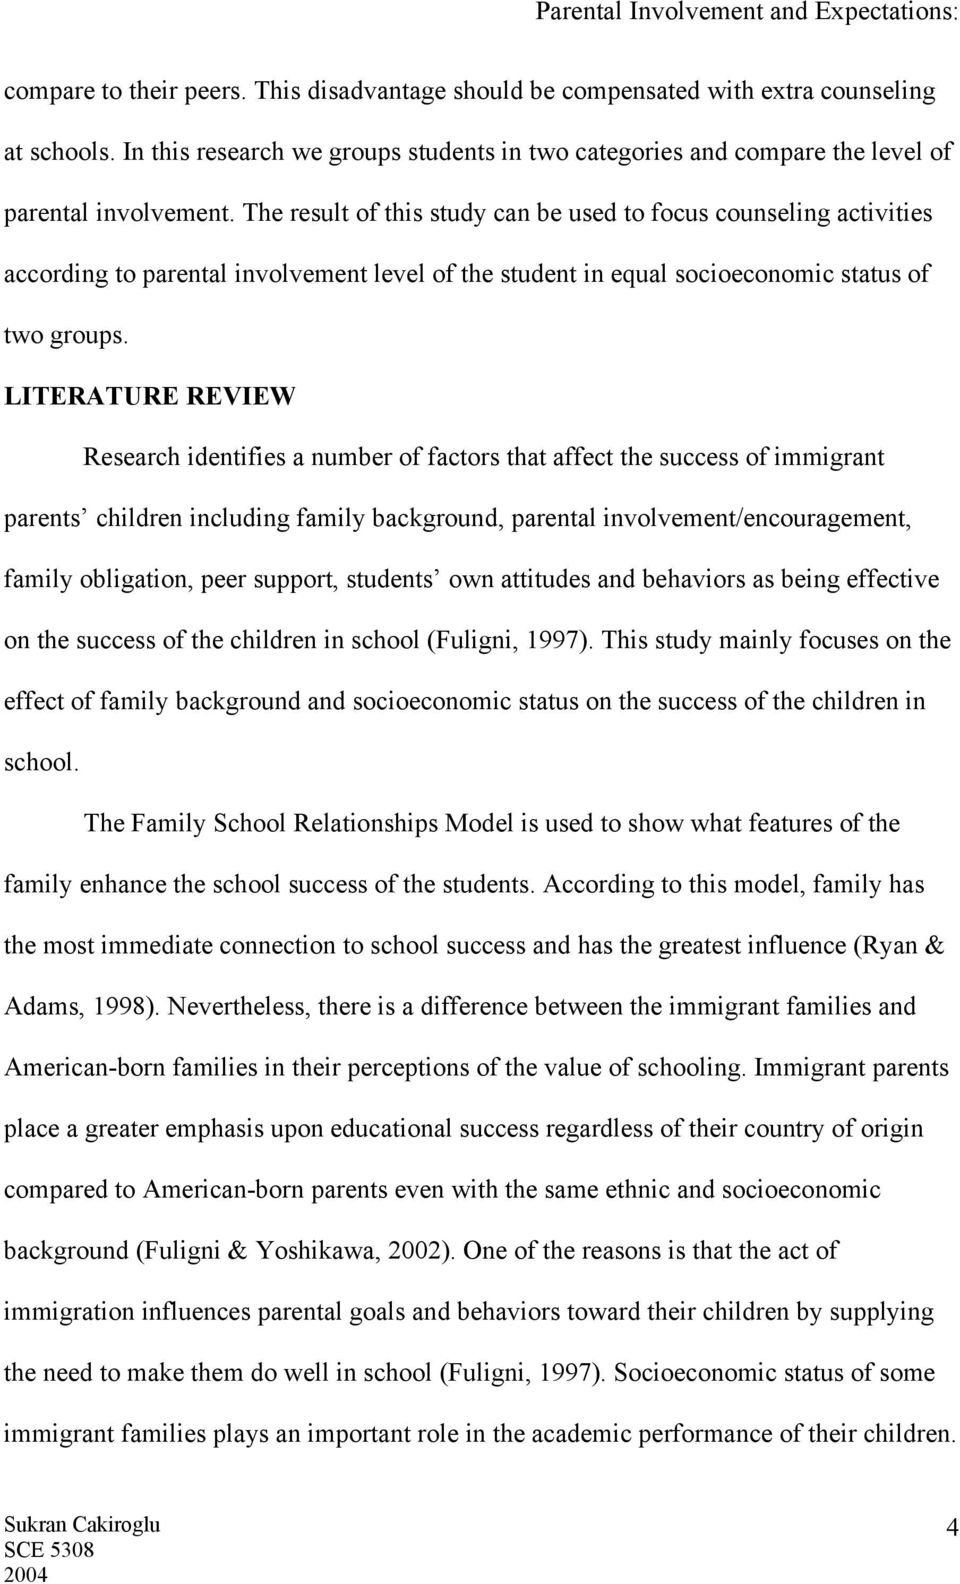 LITERATURE REVIEW Research identifies a number of factors that affect the success of immigrant parents children including family background, parental involvement/encouragement, family obligation,